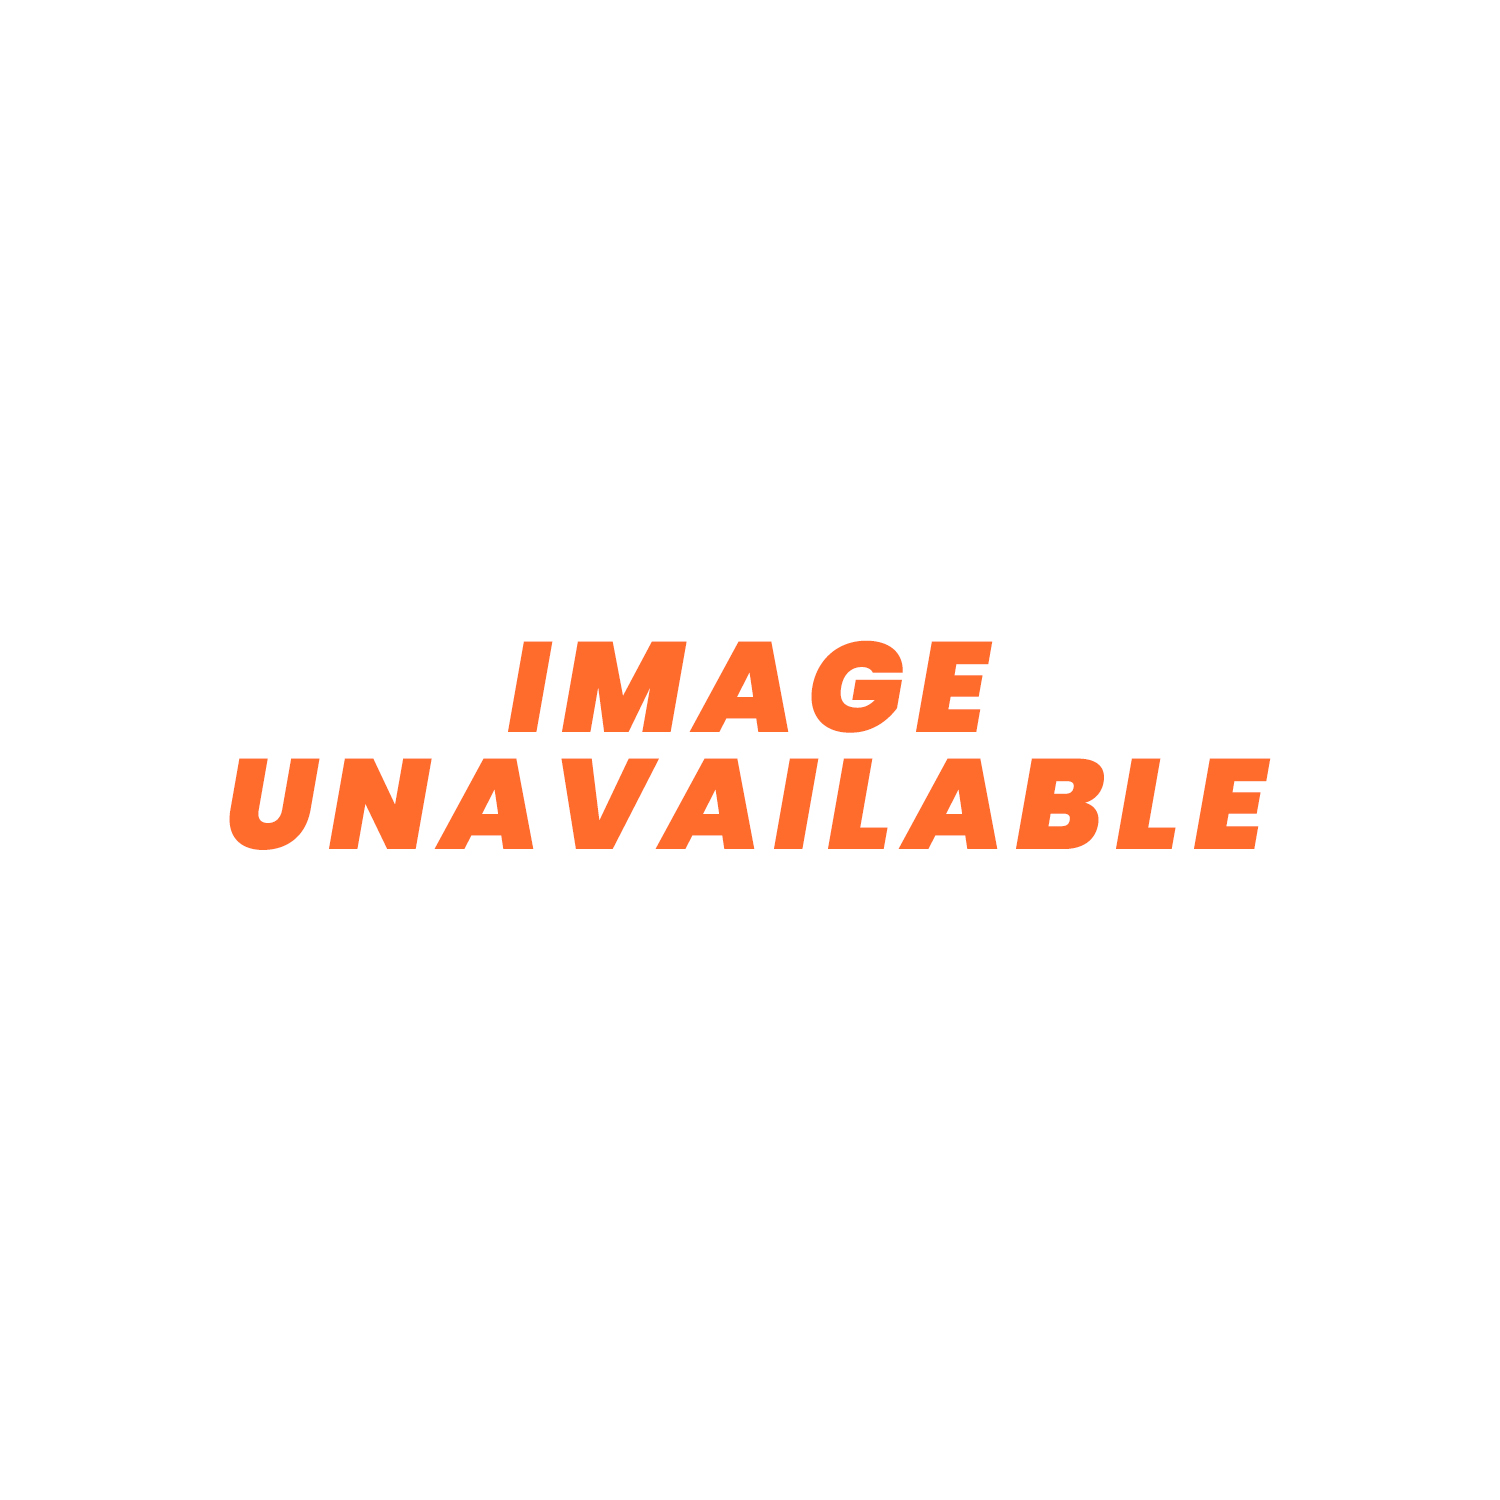 EWP115 Alloy Water Pump & Digital Controller 24v kit